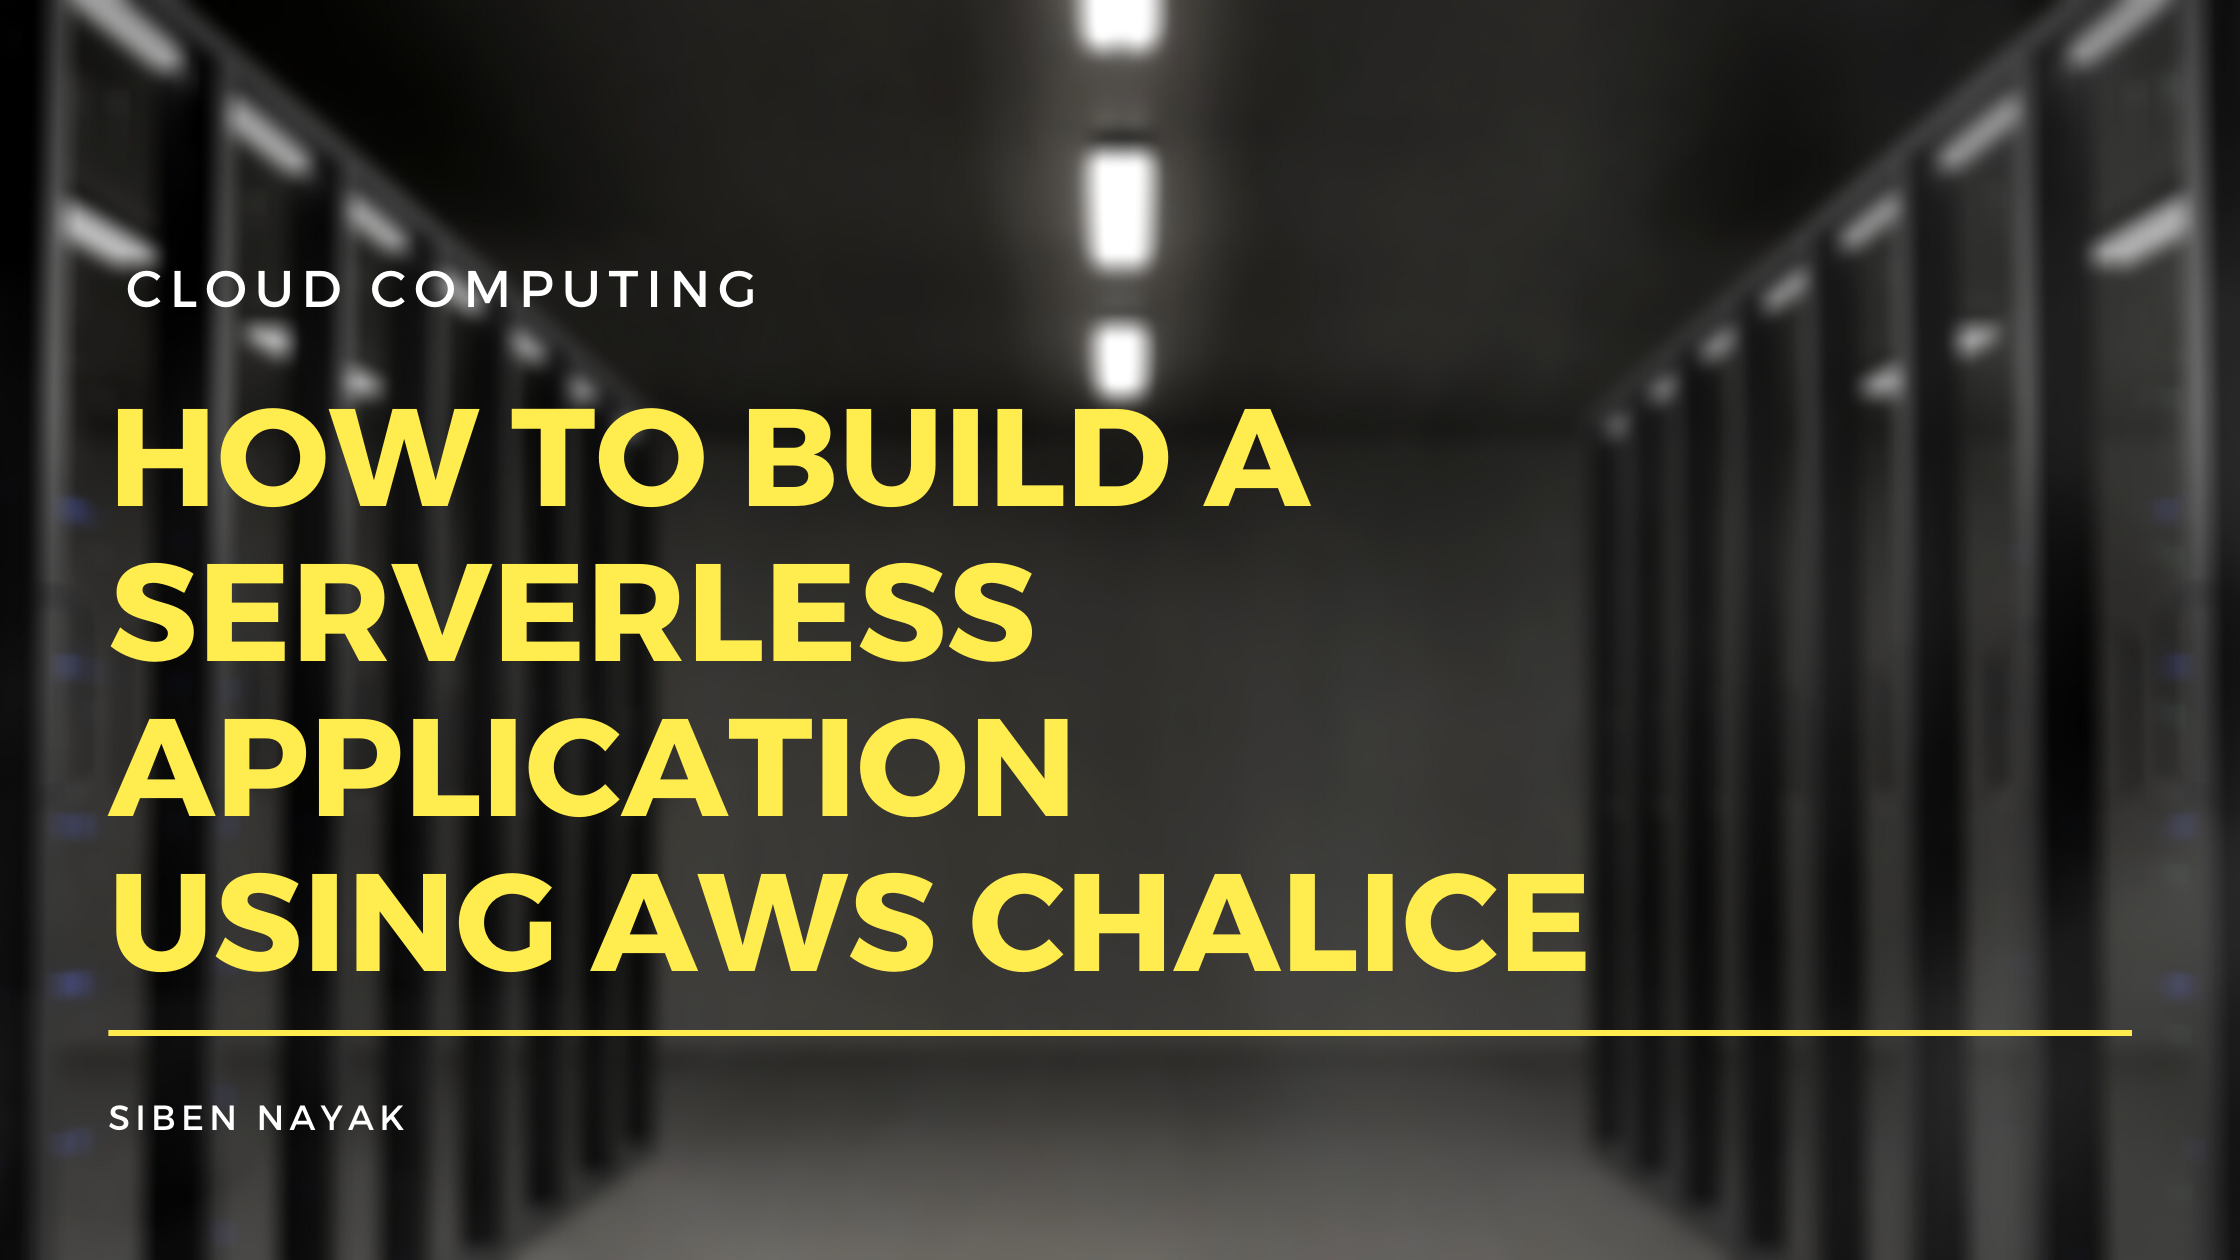 How to Build a Serverless Application Using AWSChalice